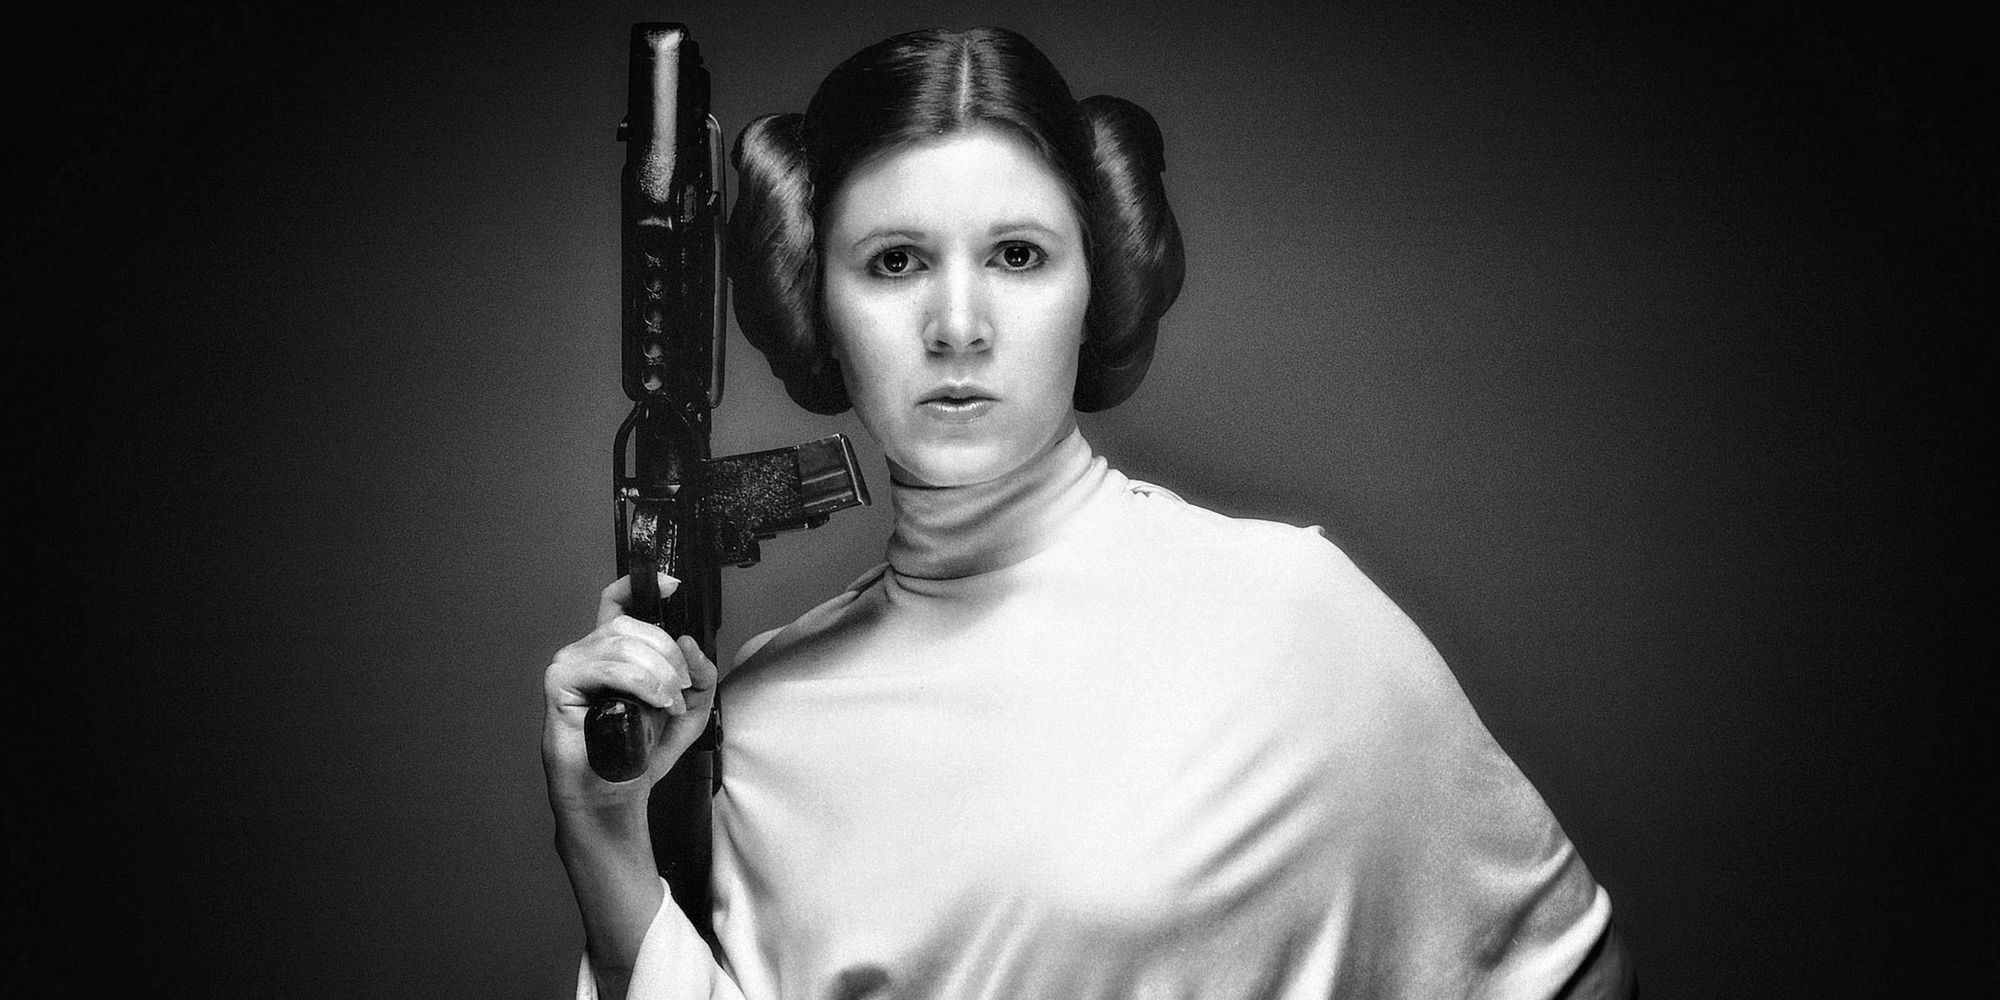 Star Wars: Looking for Leia Documentary Explores Women Fans